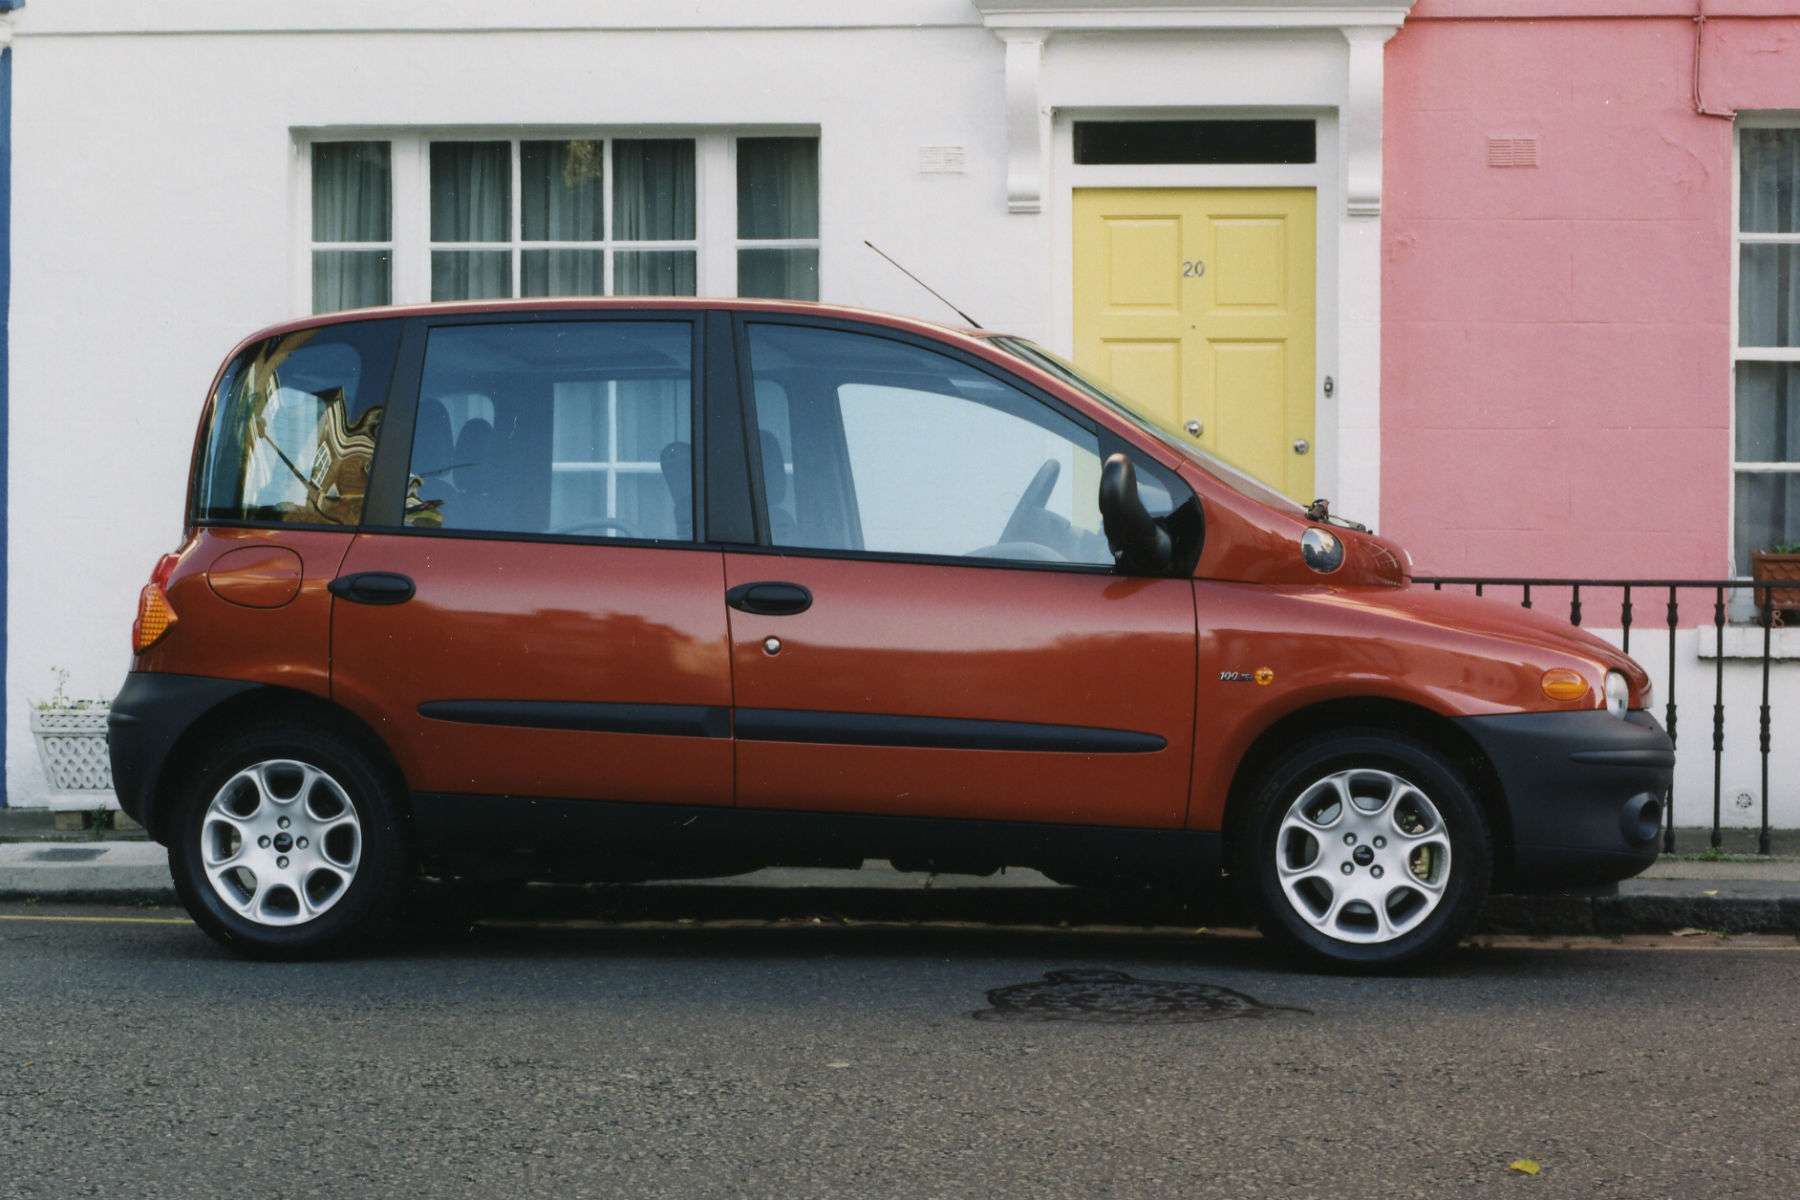 Drivers are stopping for selfies with an abandoned Fiat Multipla